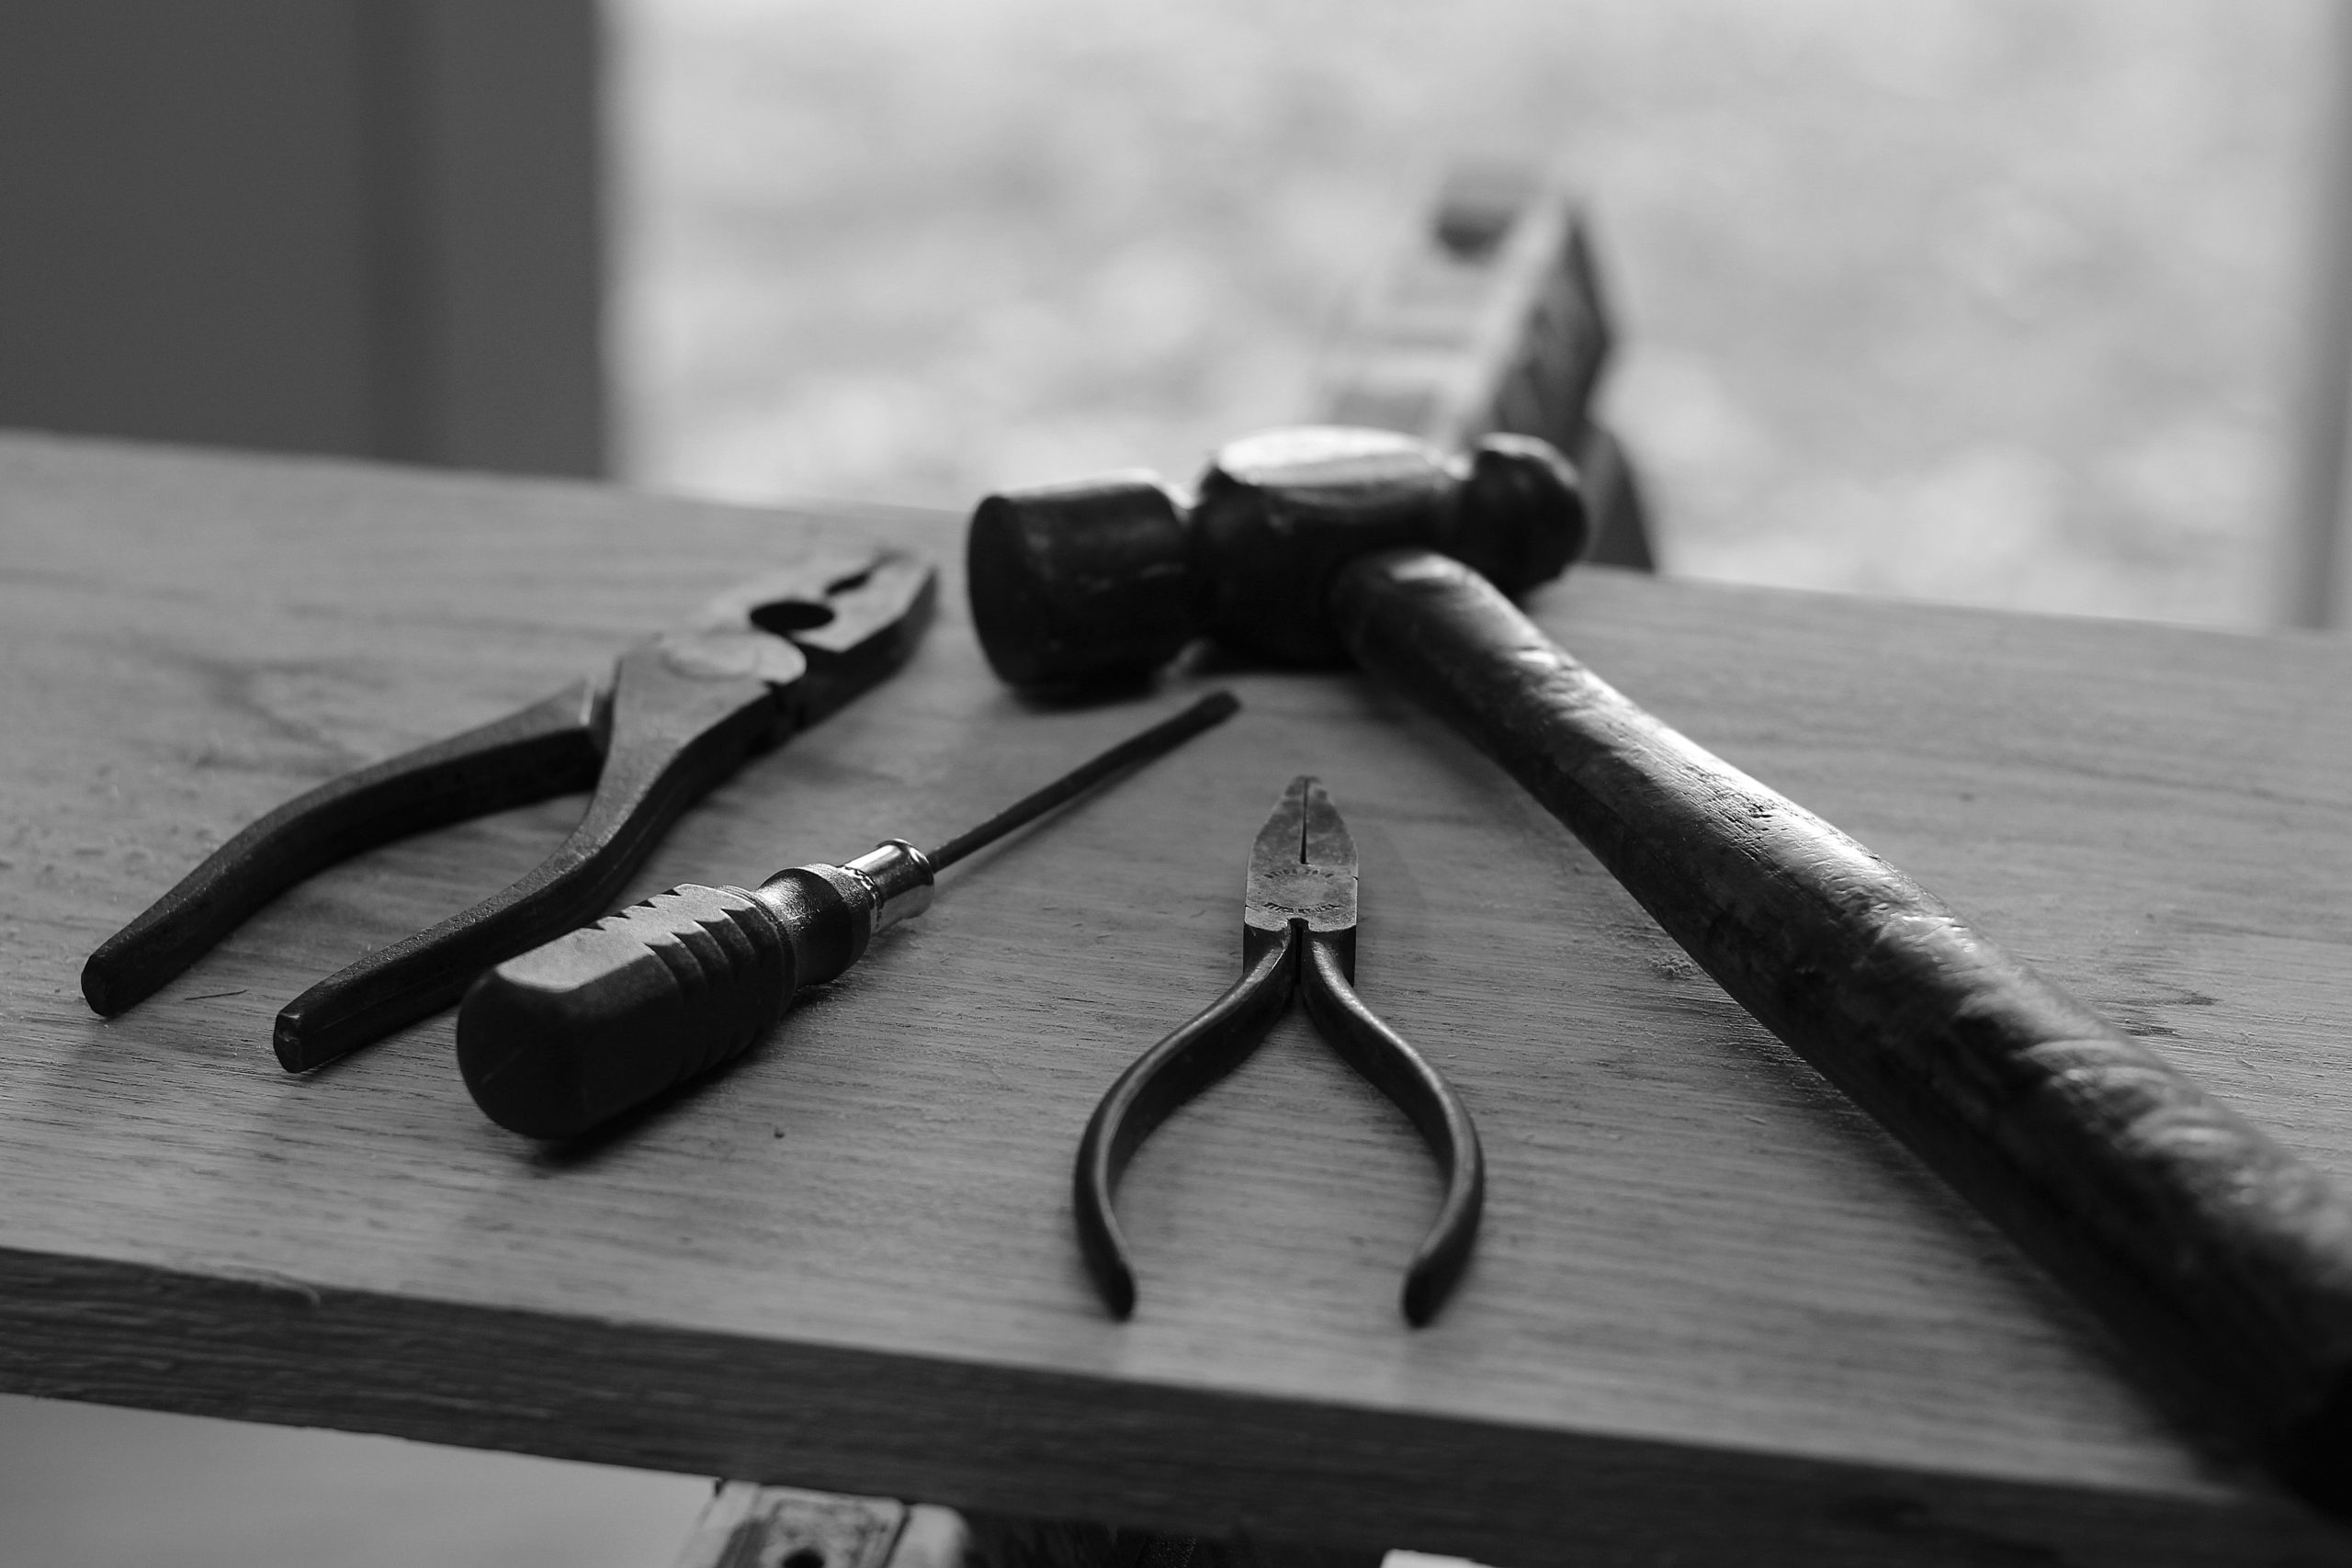 Black and white picture of tools on a bench